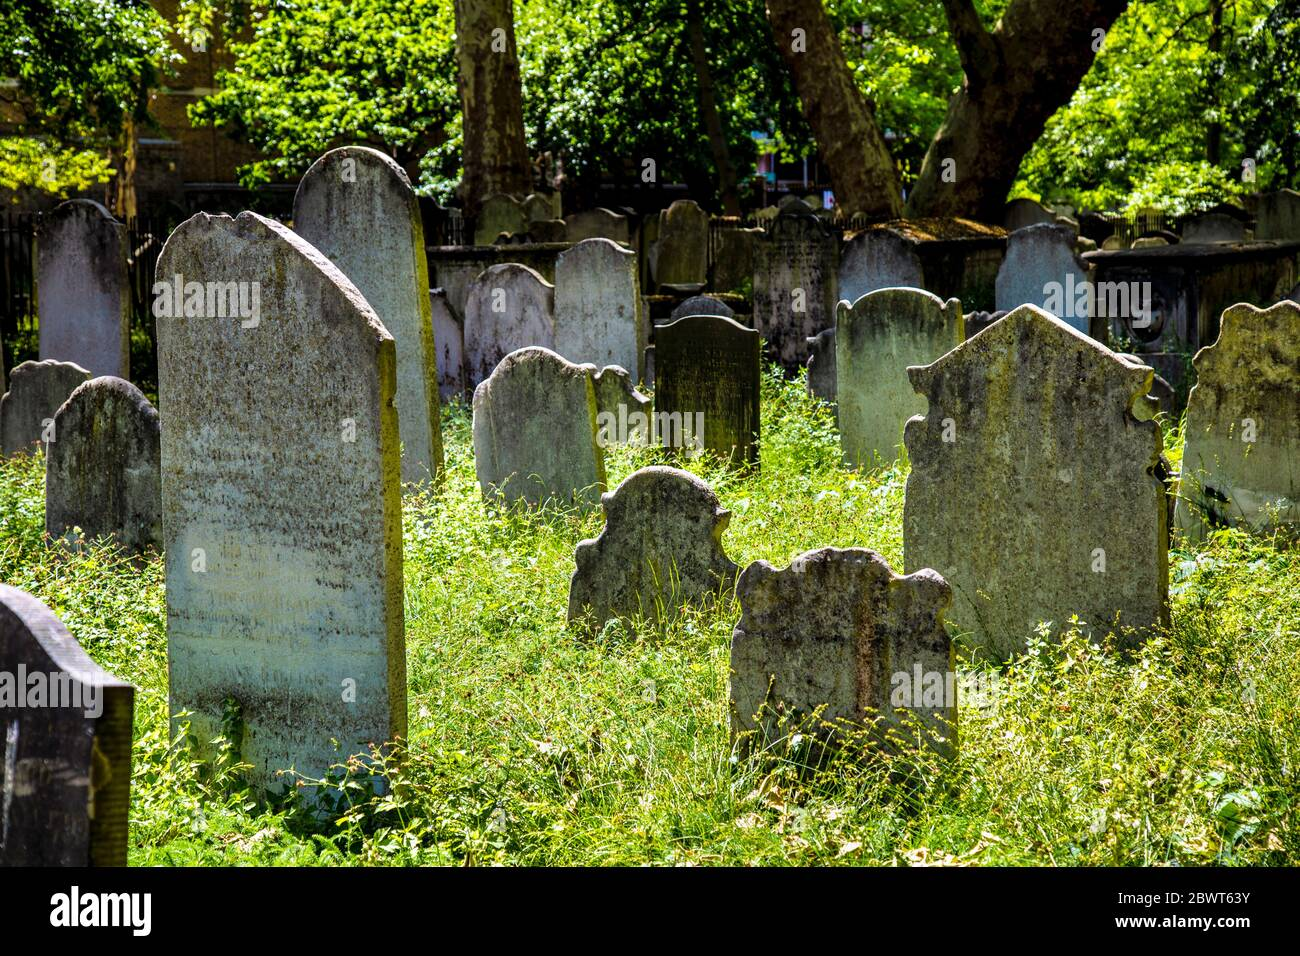 Headstones in tall grass at the Victorian Bunhill Fields Burial Ground, Old Street, London, UK Stock Photo